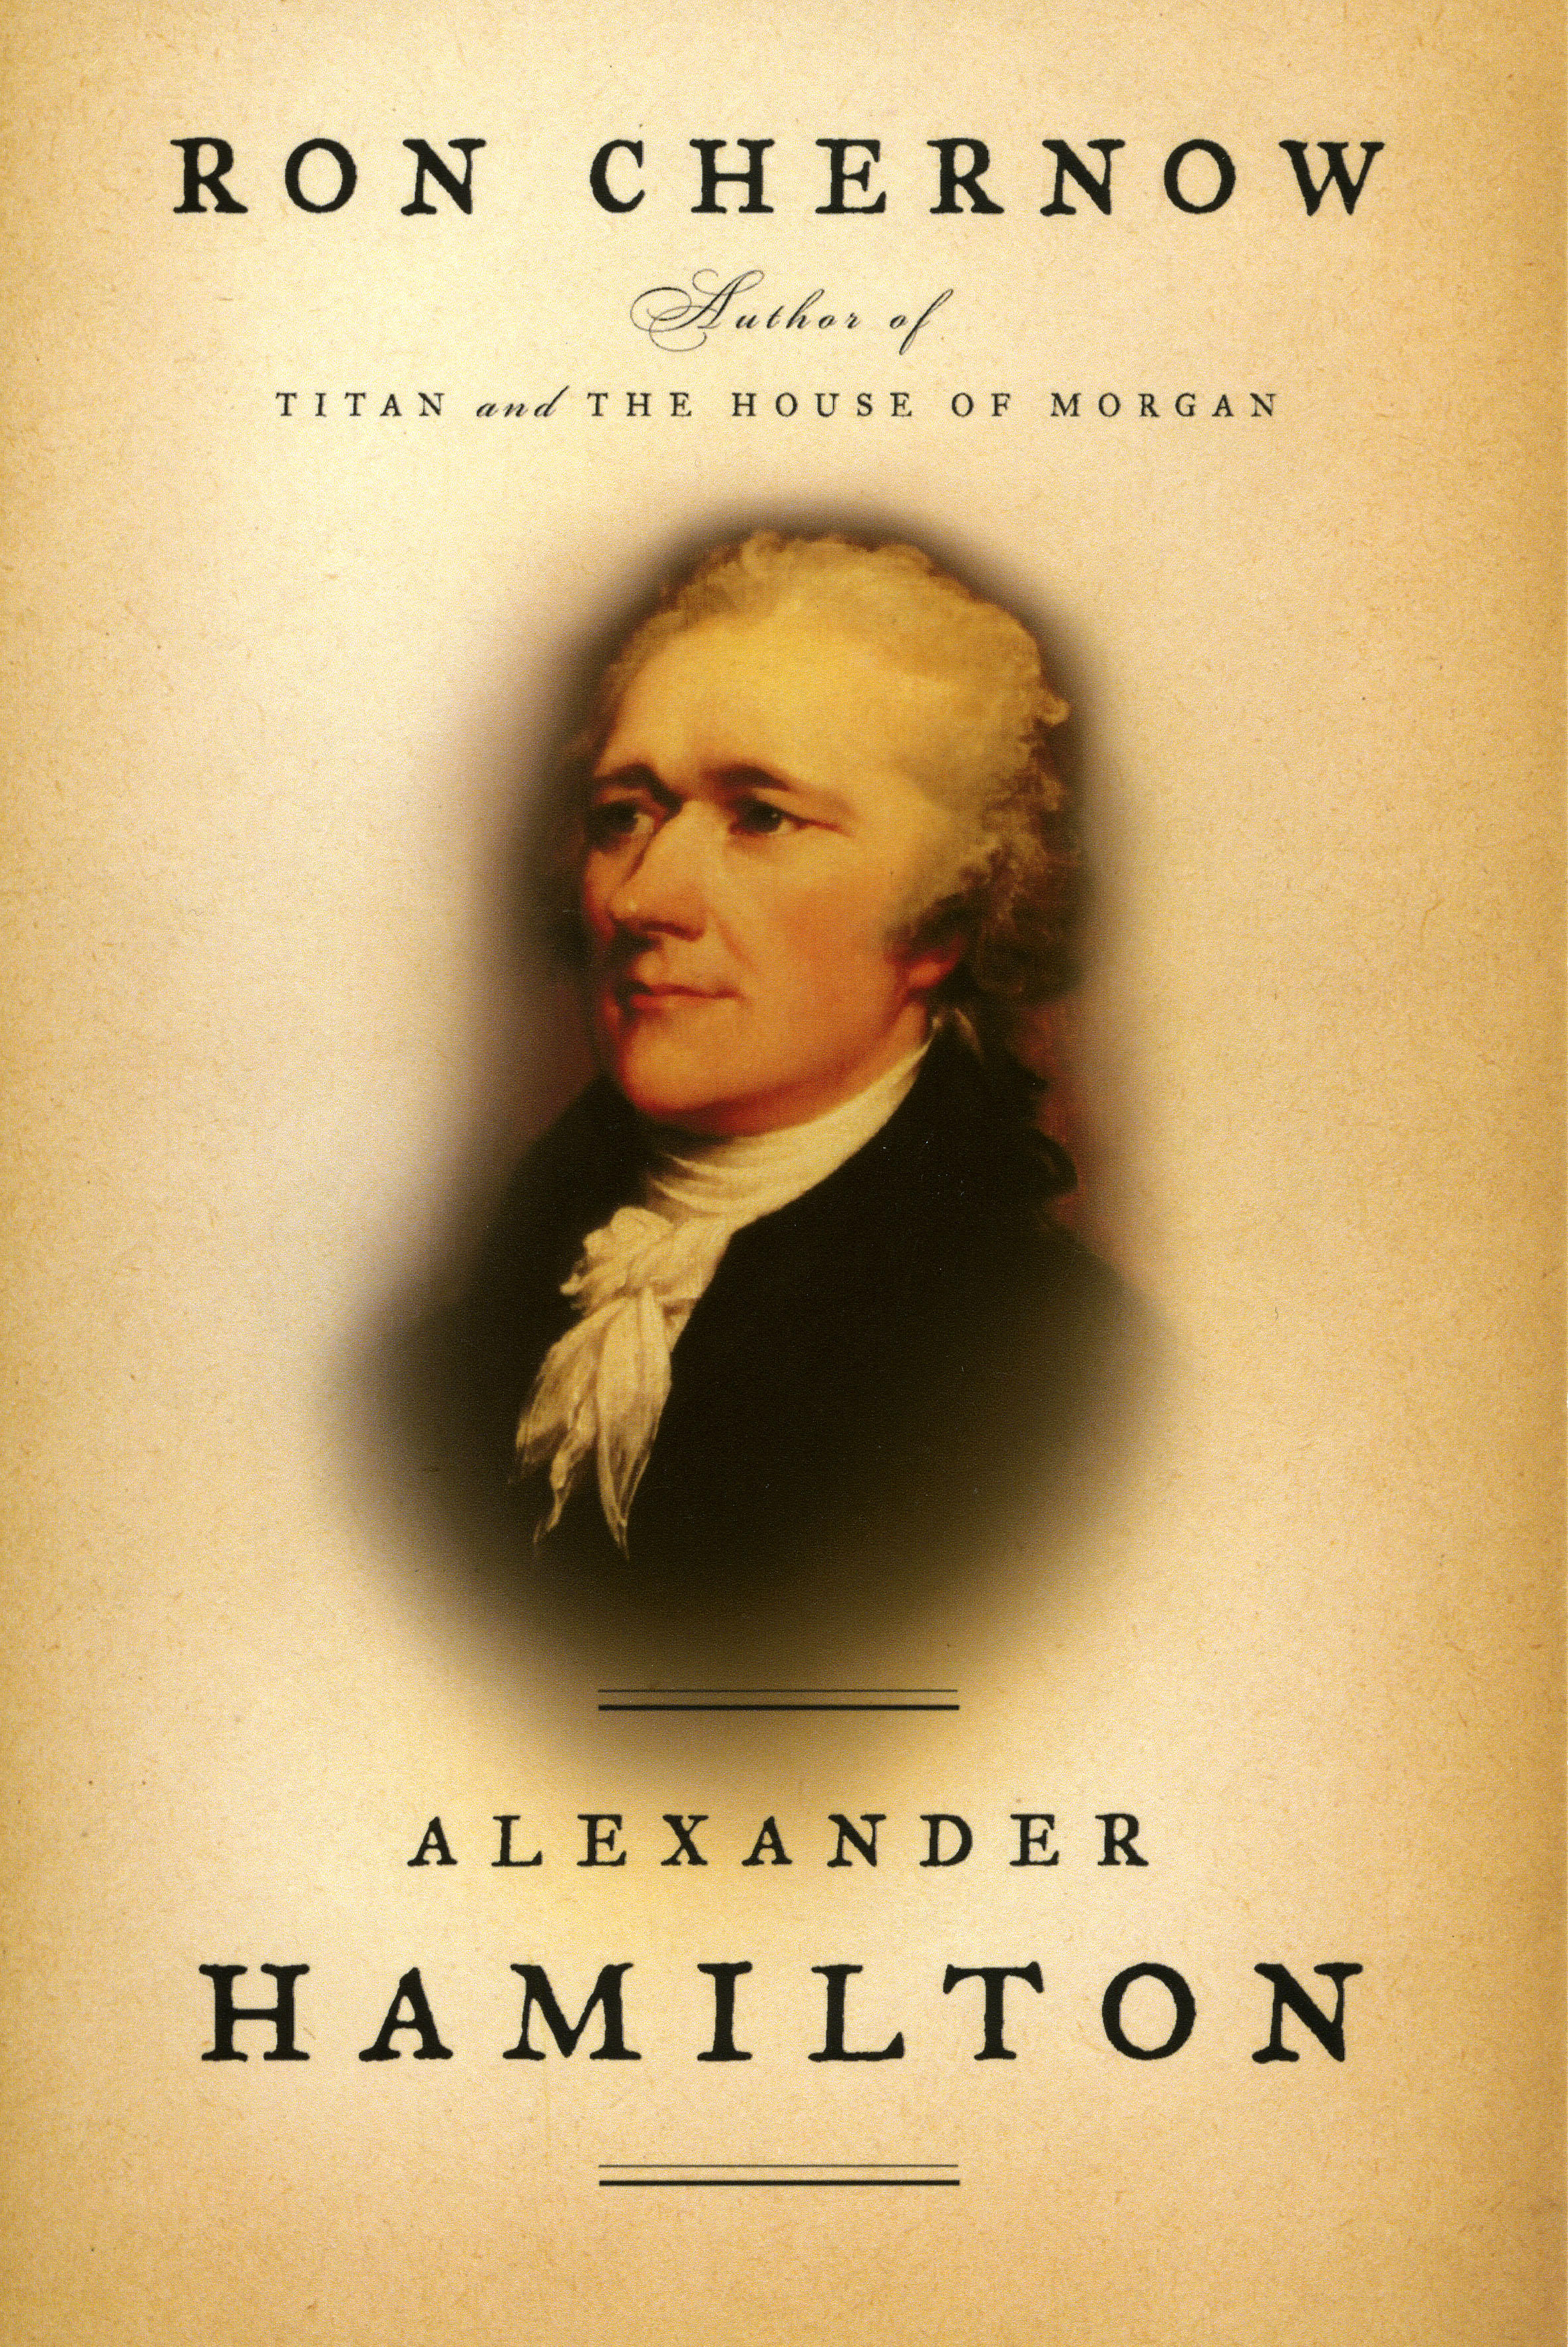 alexander hamilton book by ron chernow